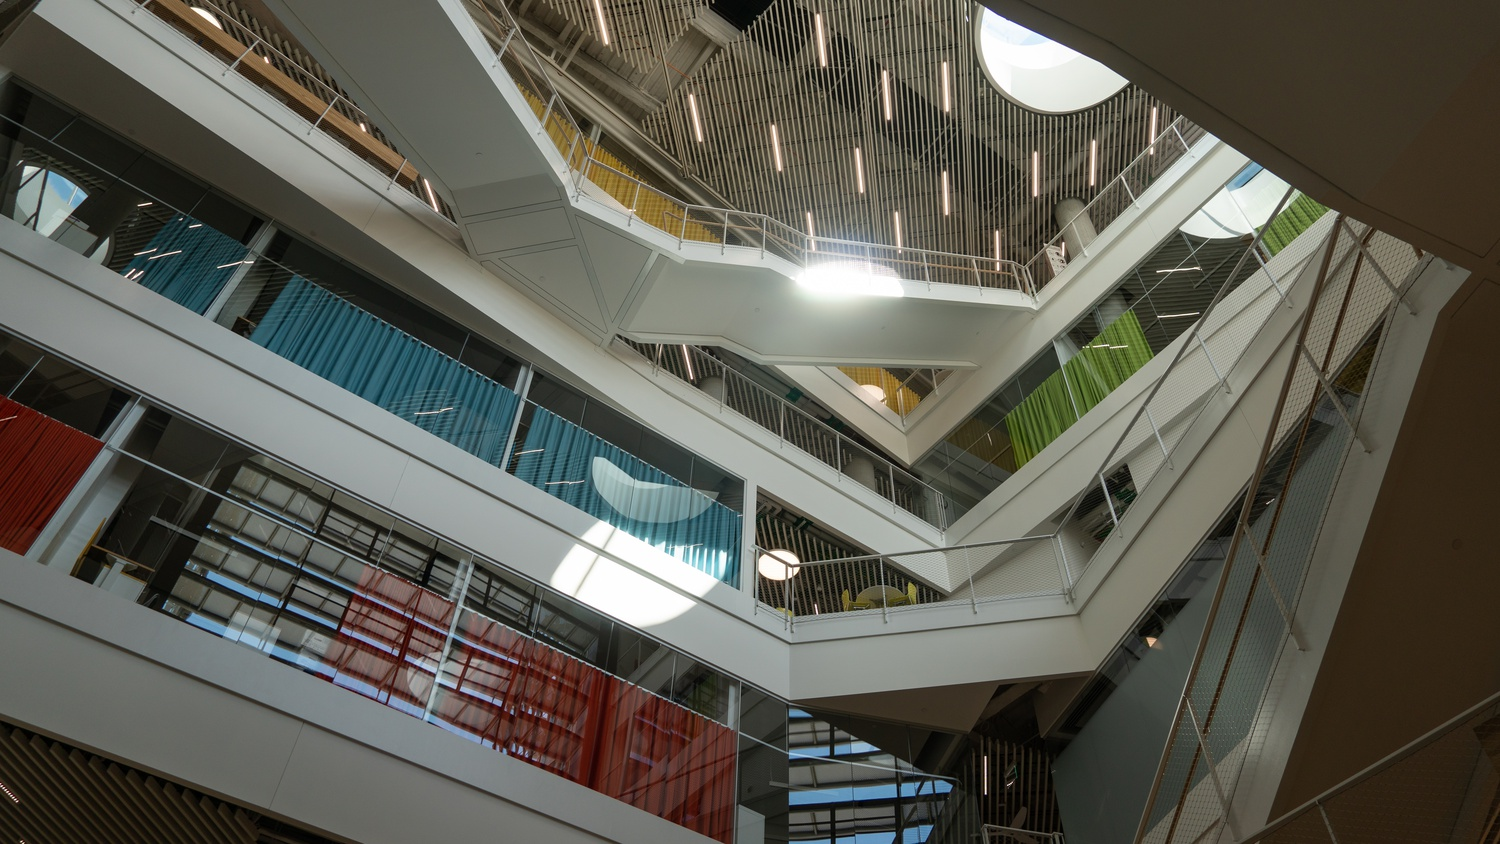 Like the larger atrium, the smaller atrium pictured here is designed to facilitate student interaction through its crisscrossing passageways.